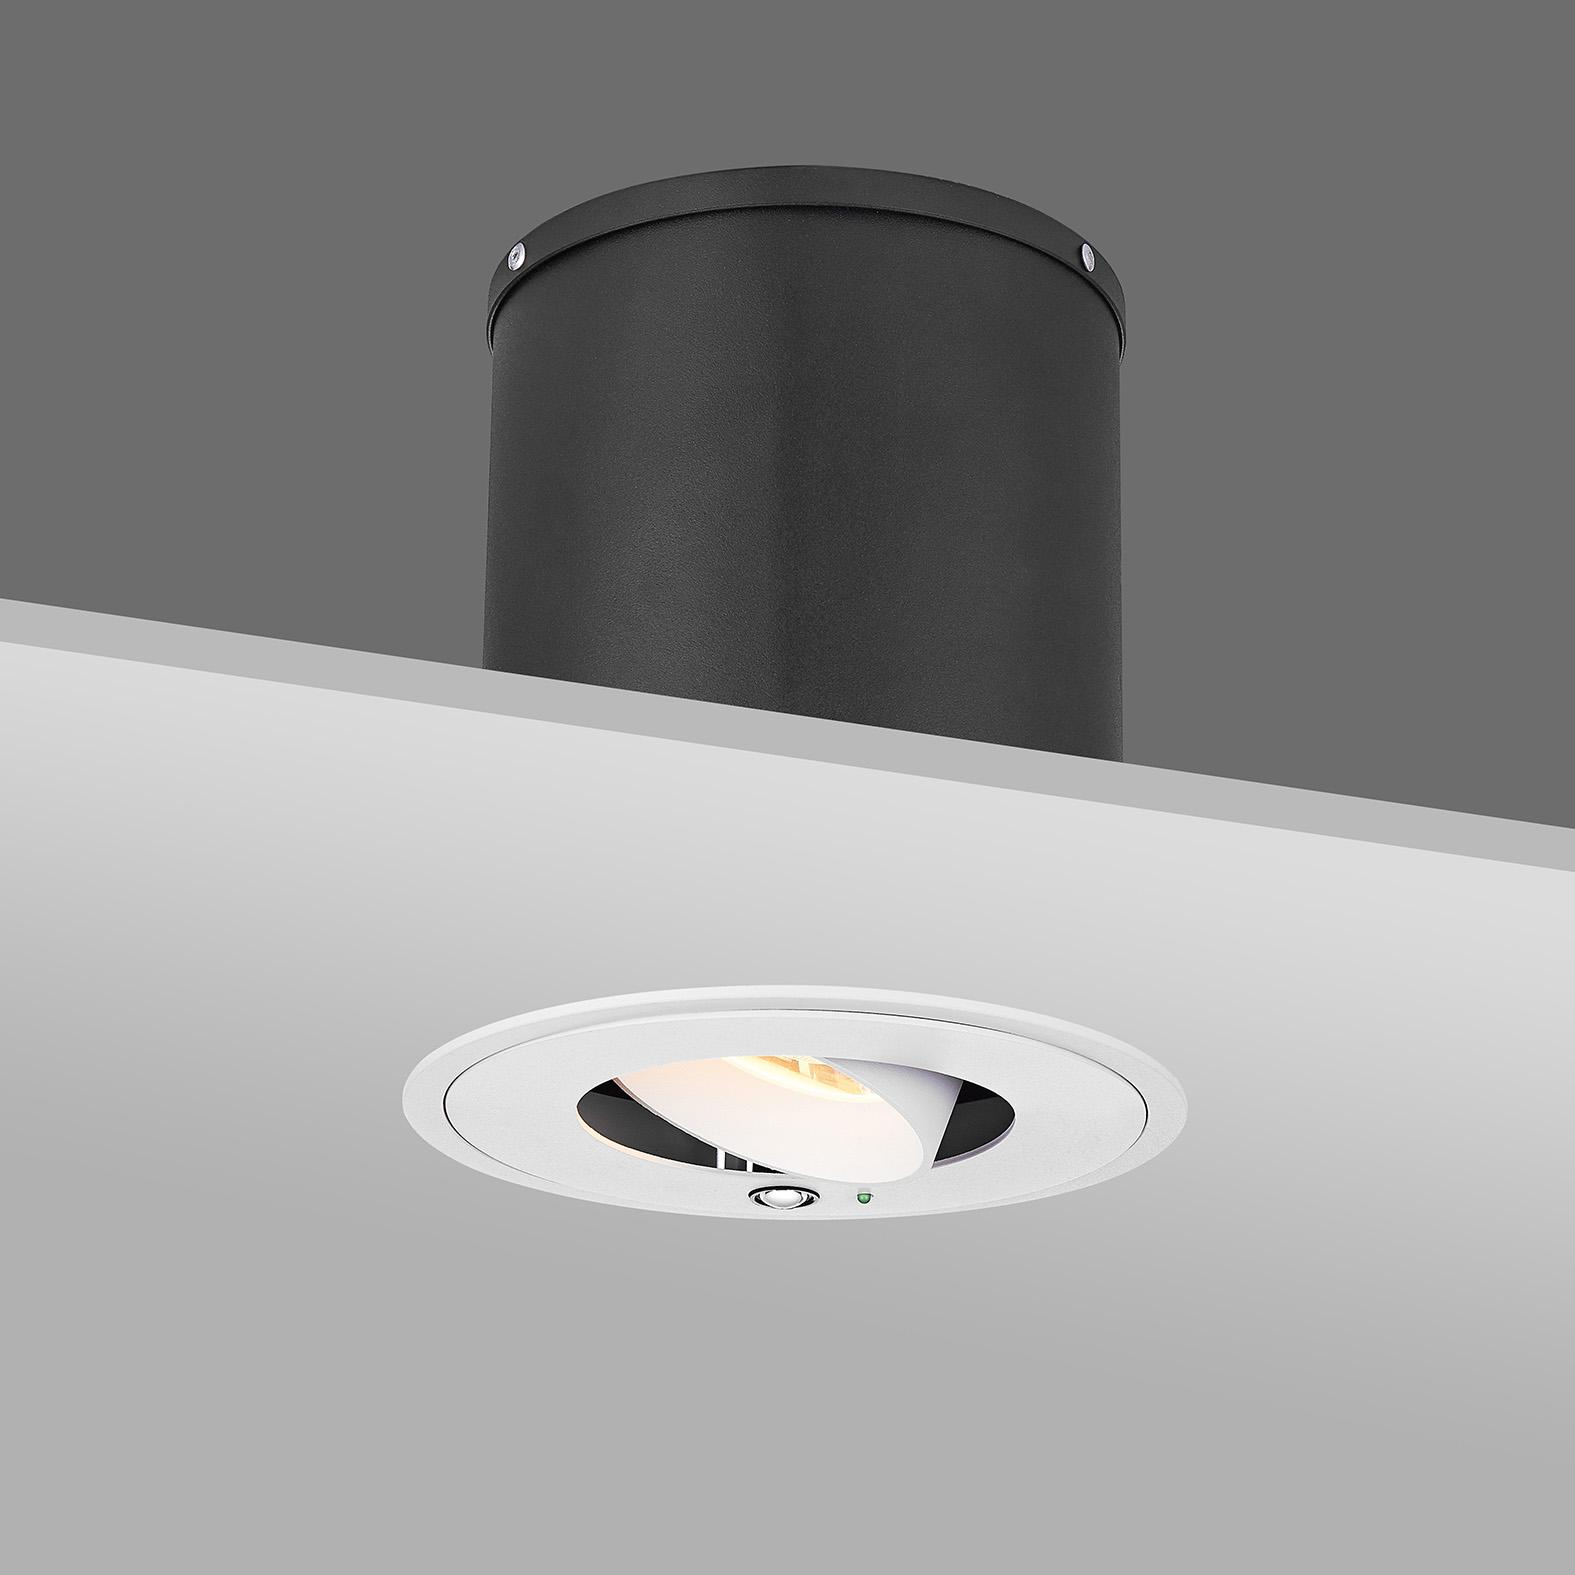 15W recessed down light